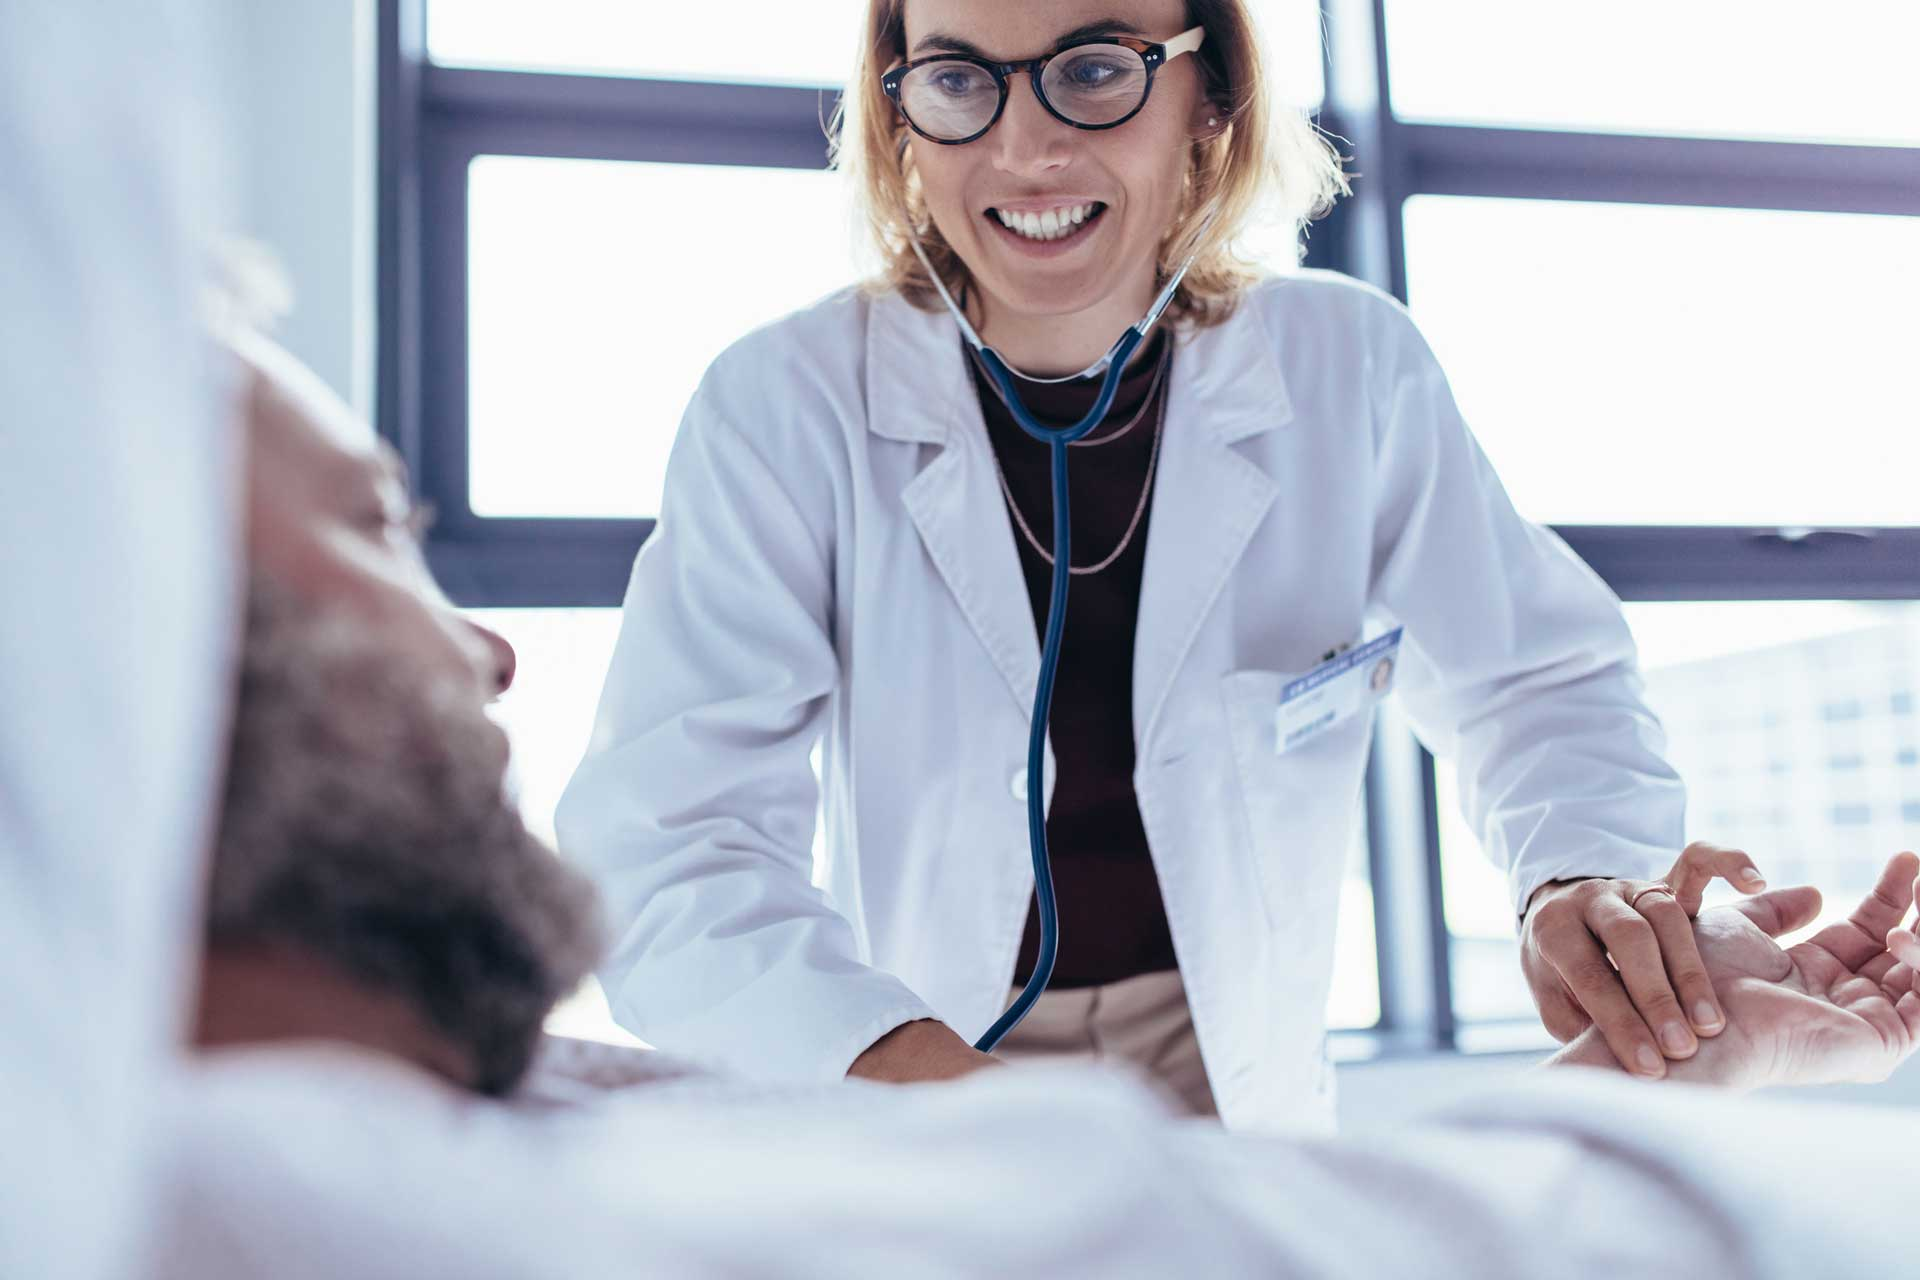 Survey: Are Physicians Happy with Their Jobs?